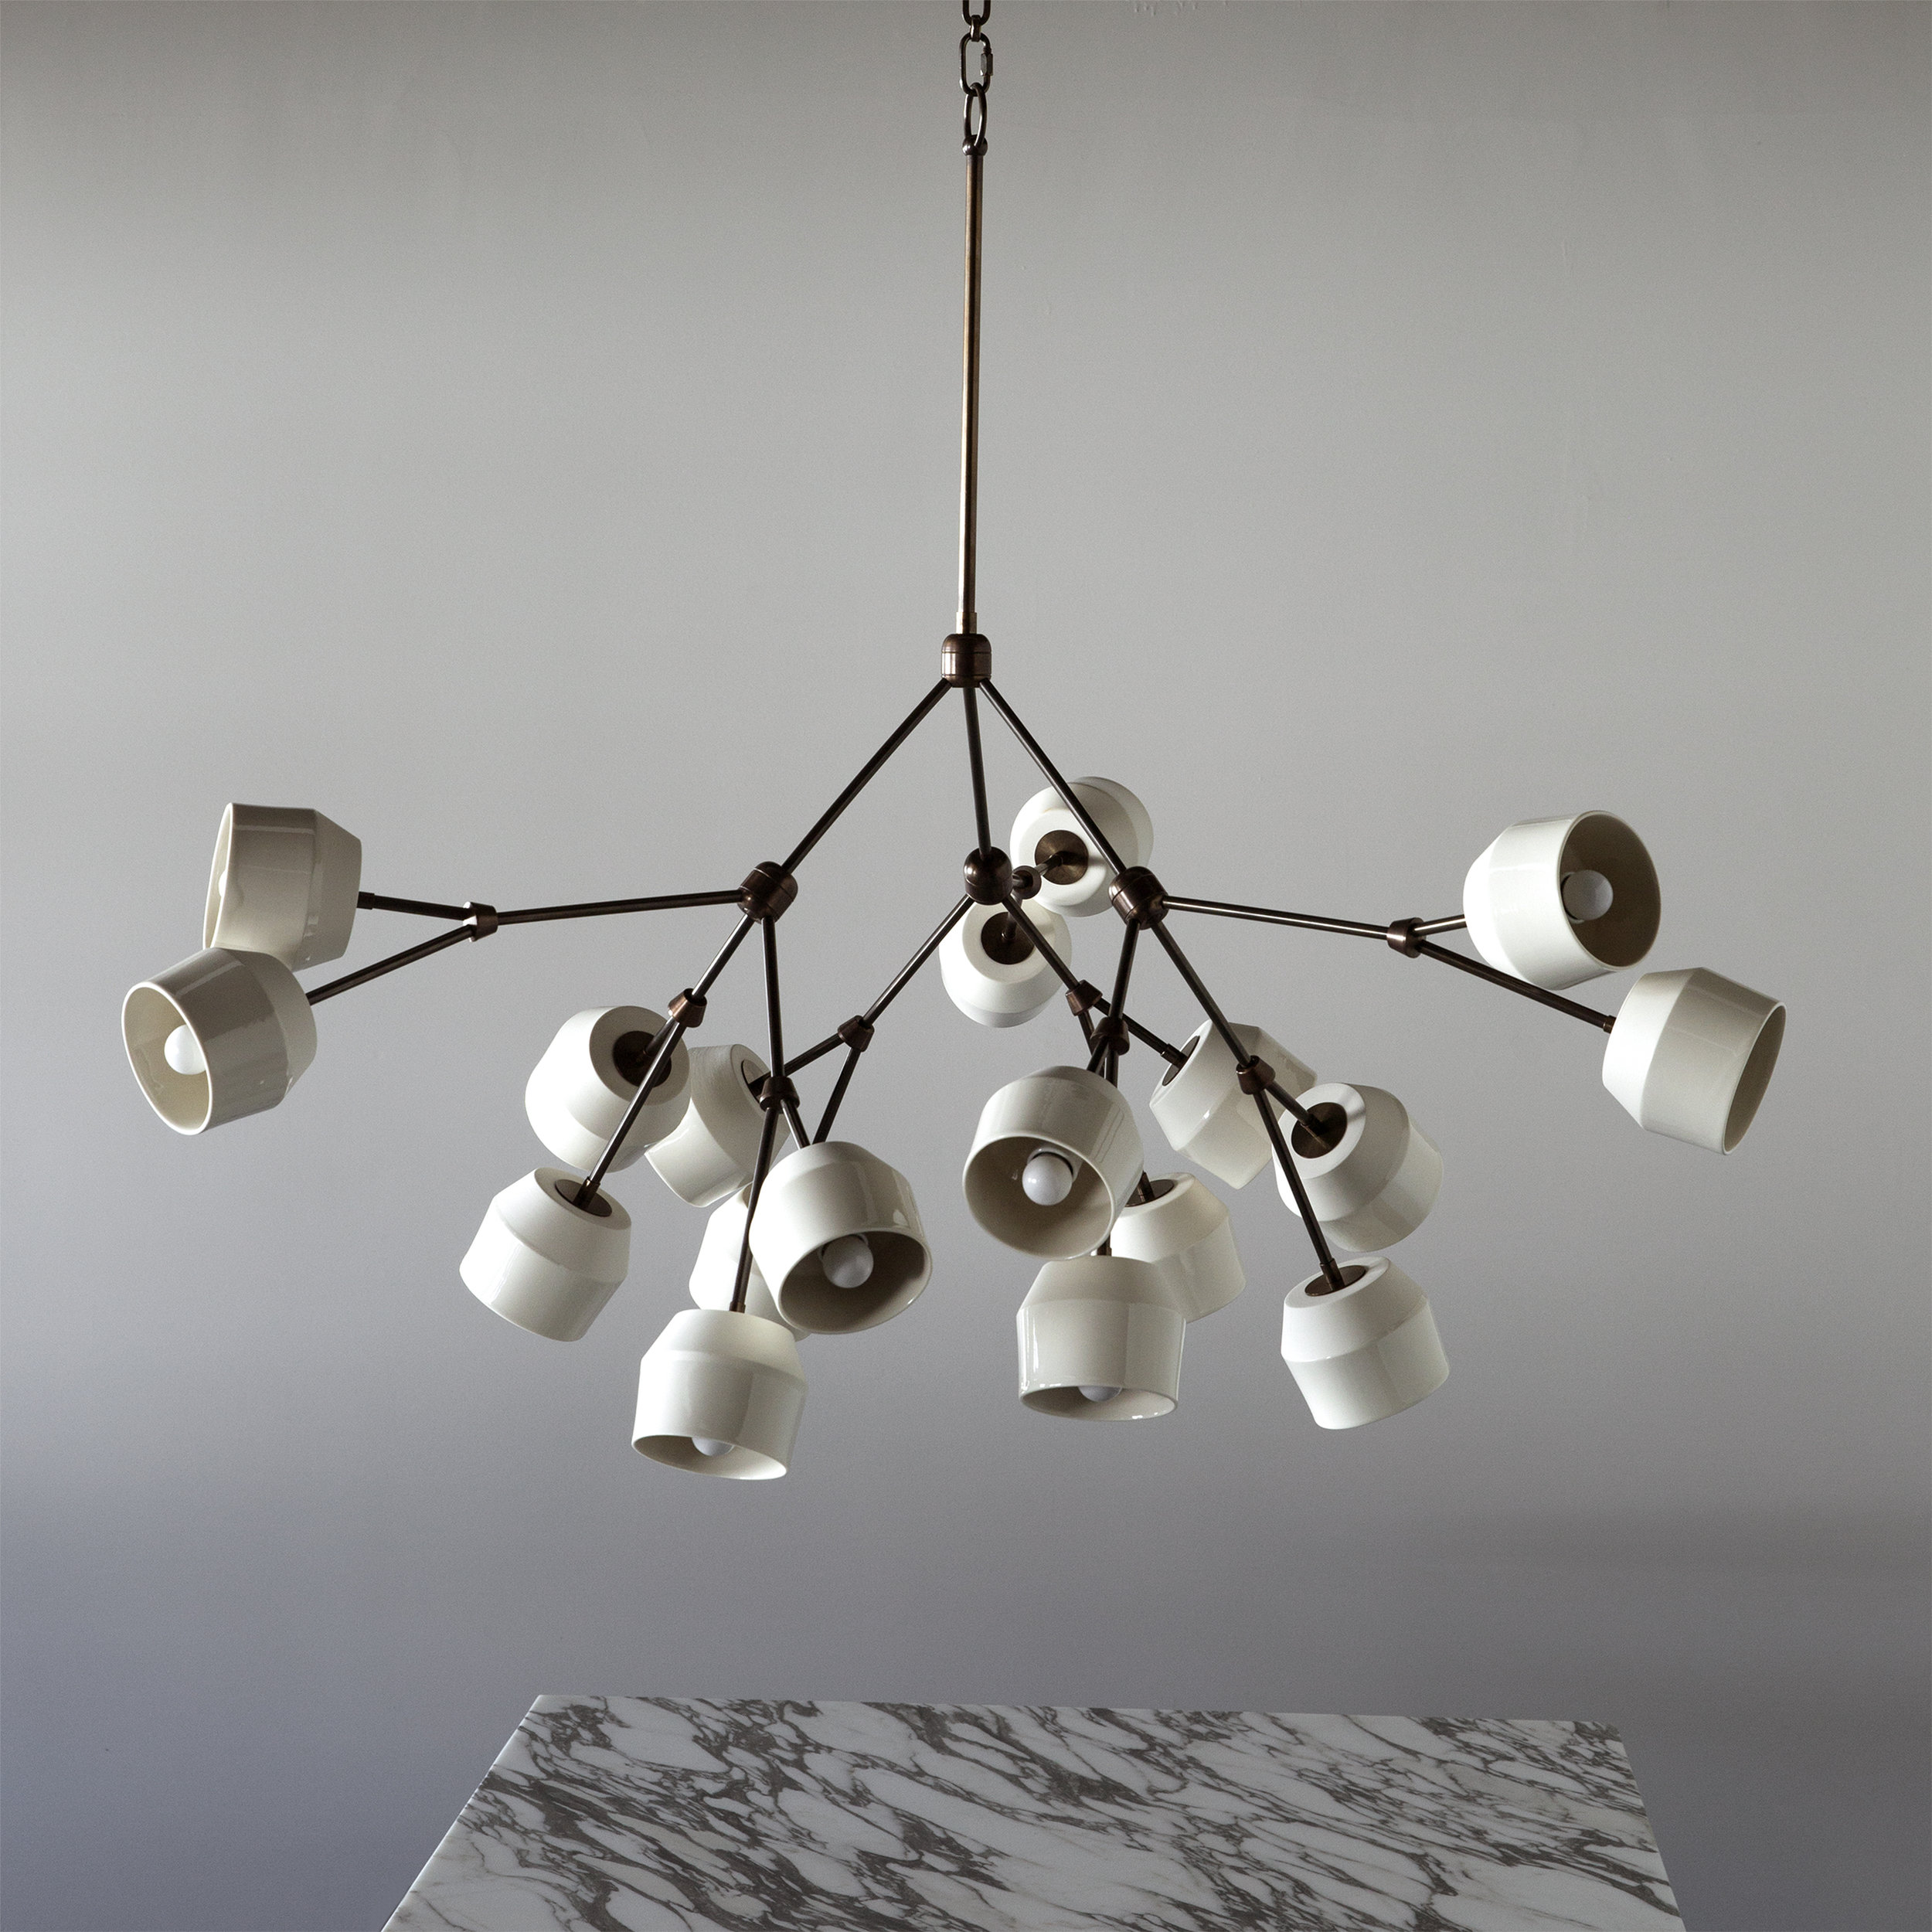 MD FORCH 18 MARBLE WHT.jpg